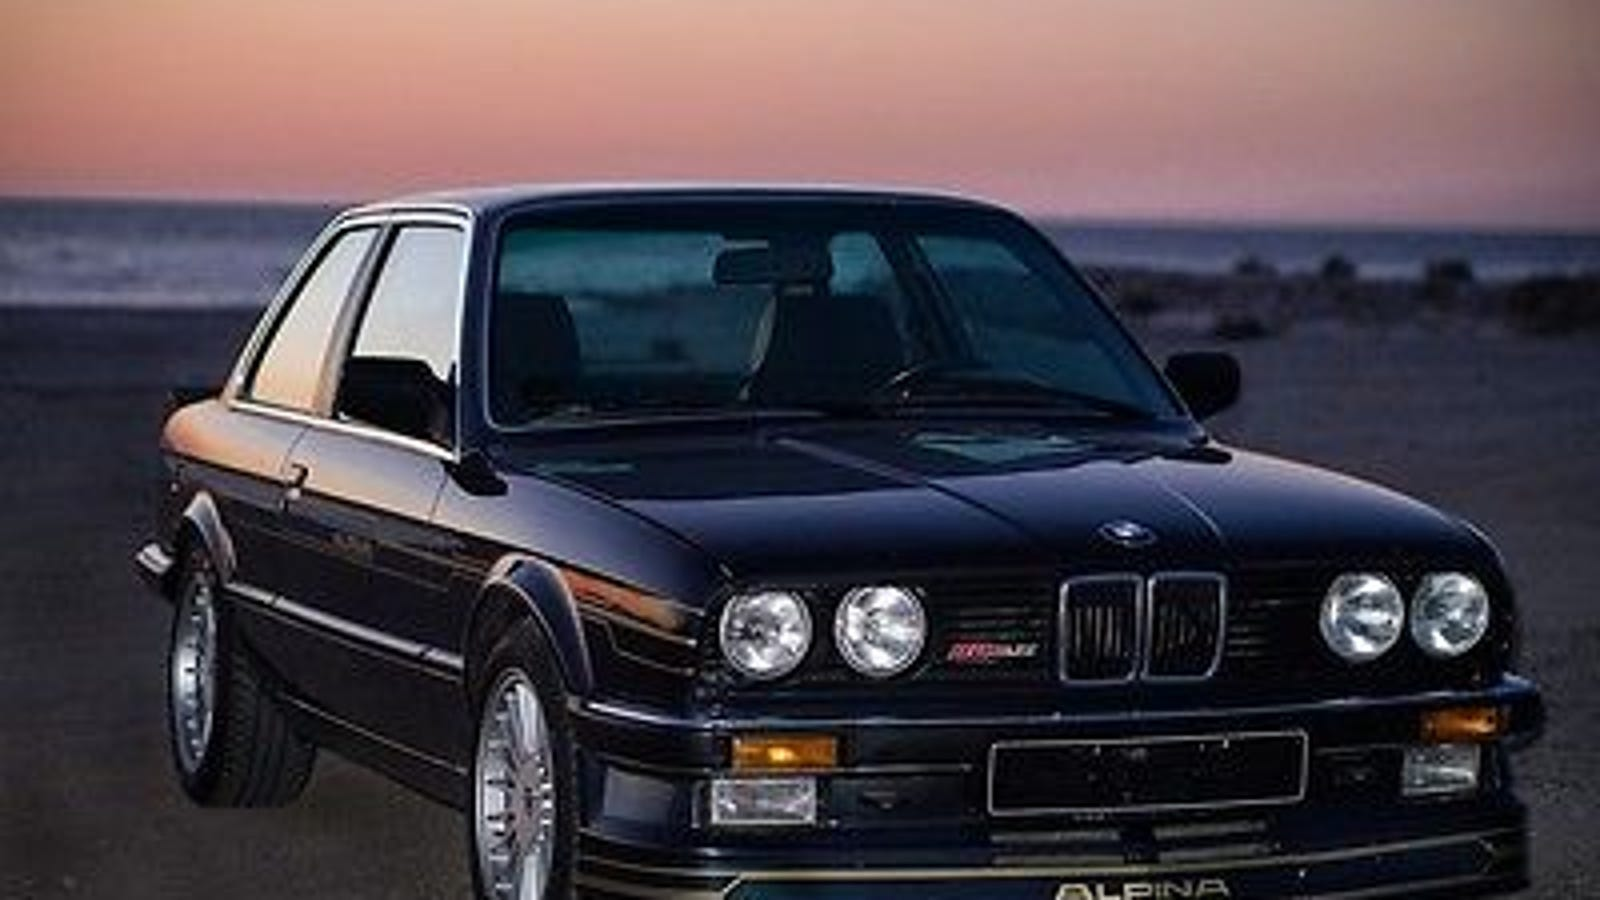 The Only Alpina B6 Bmw E30 325i For Sale In The Us